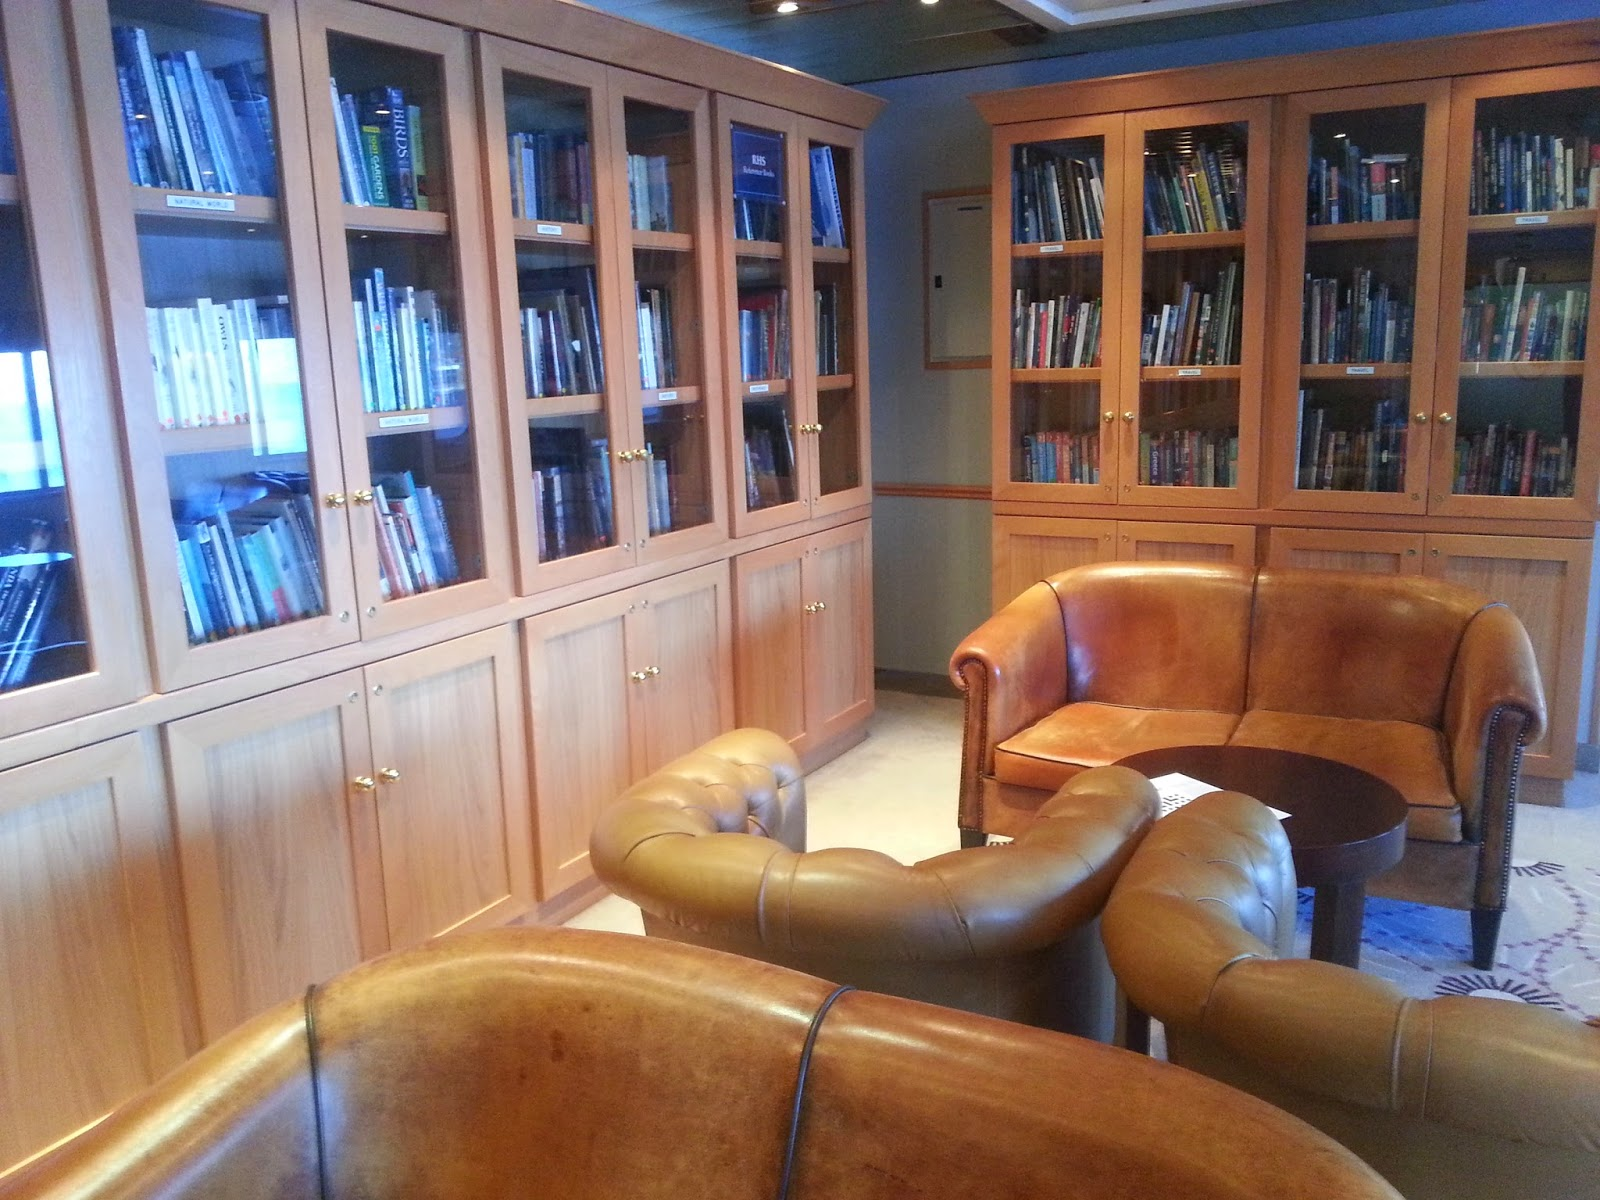 On Board Voyages of Discovery's Cruise Ship MV Voyager - Library